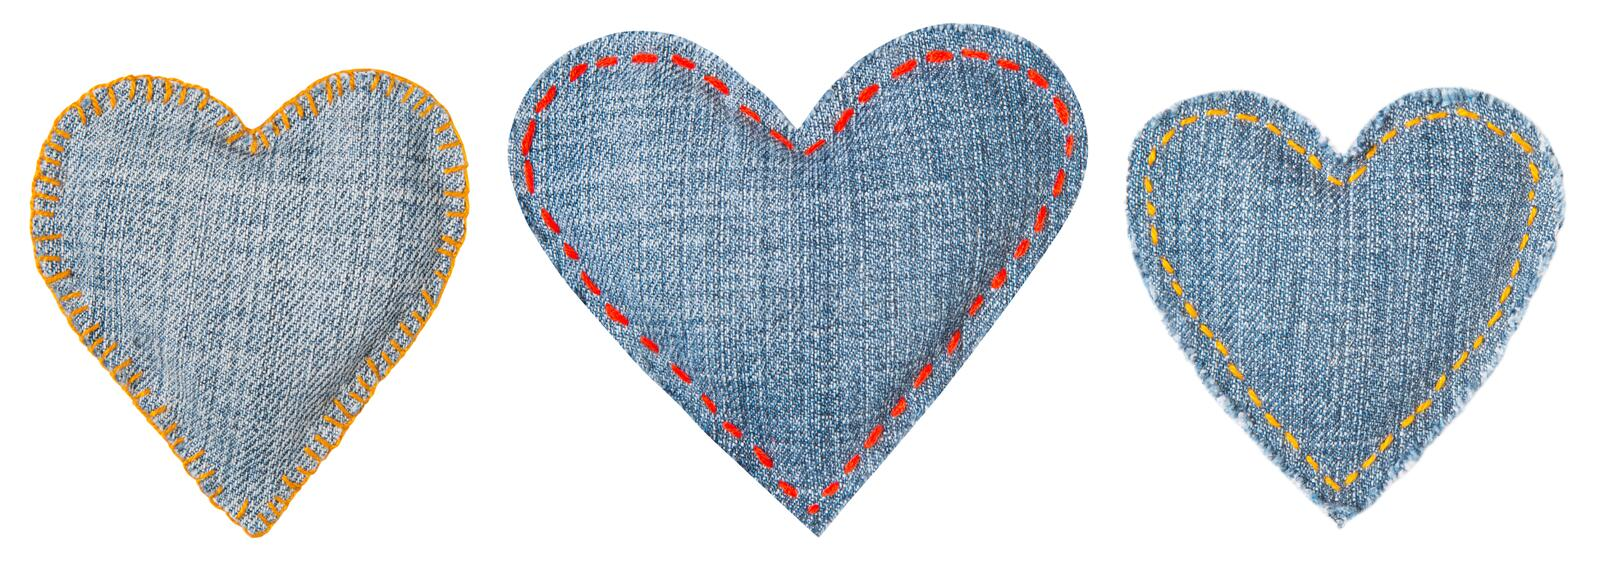 Jeans Heart, Patch with Stitches Seams, Set of Fabric Shapes White Isolated, Love concept royalty free stock photo